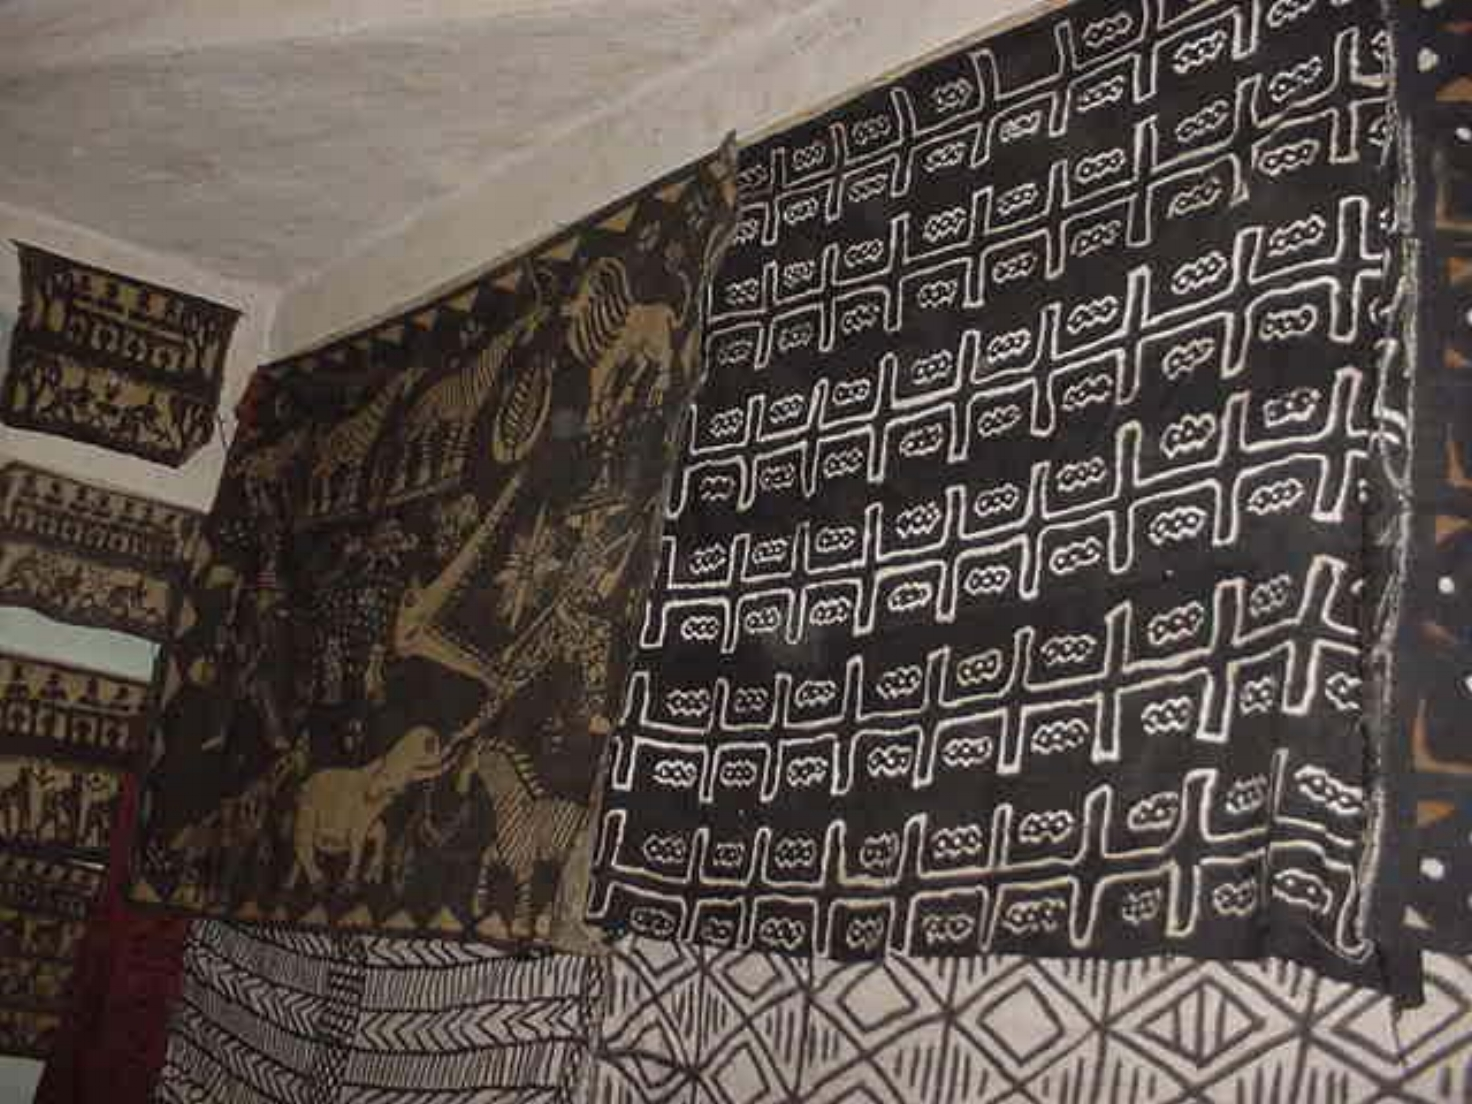 The animal tapestry now hangs in Michael Ladden's home